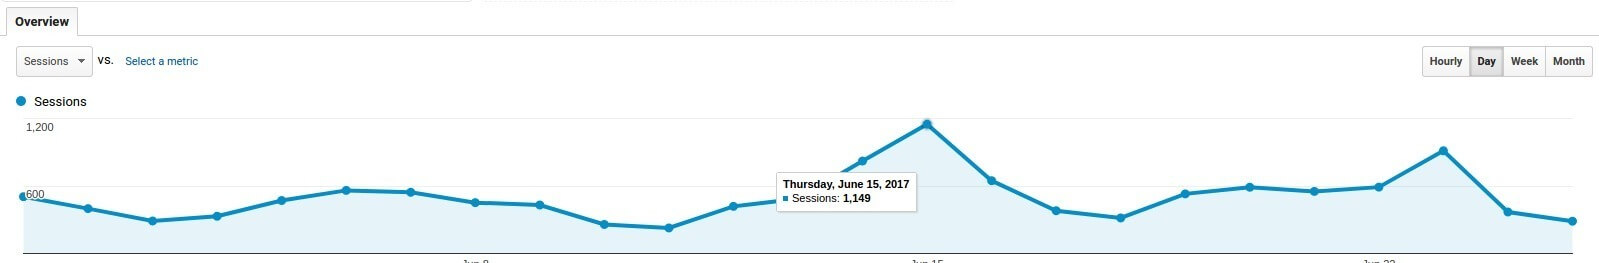 Google Analytics graph of traffic